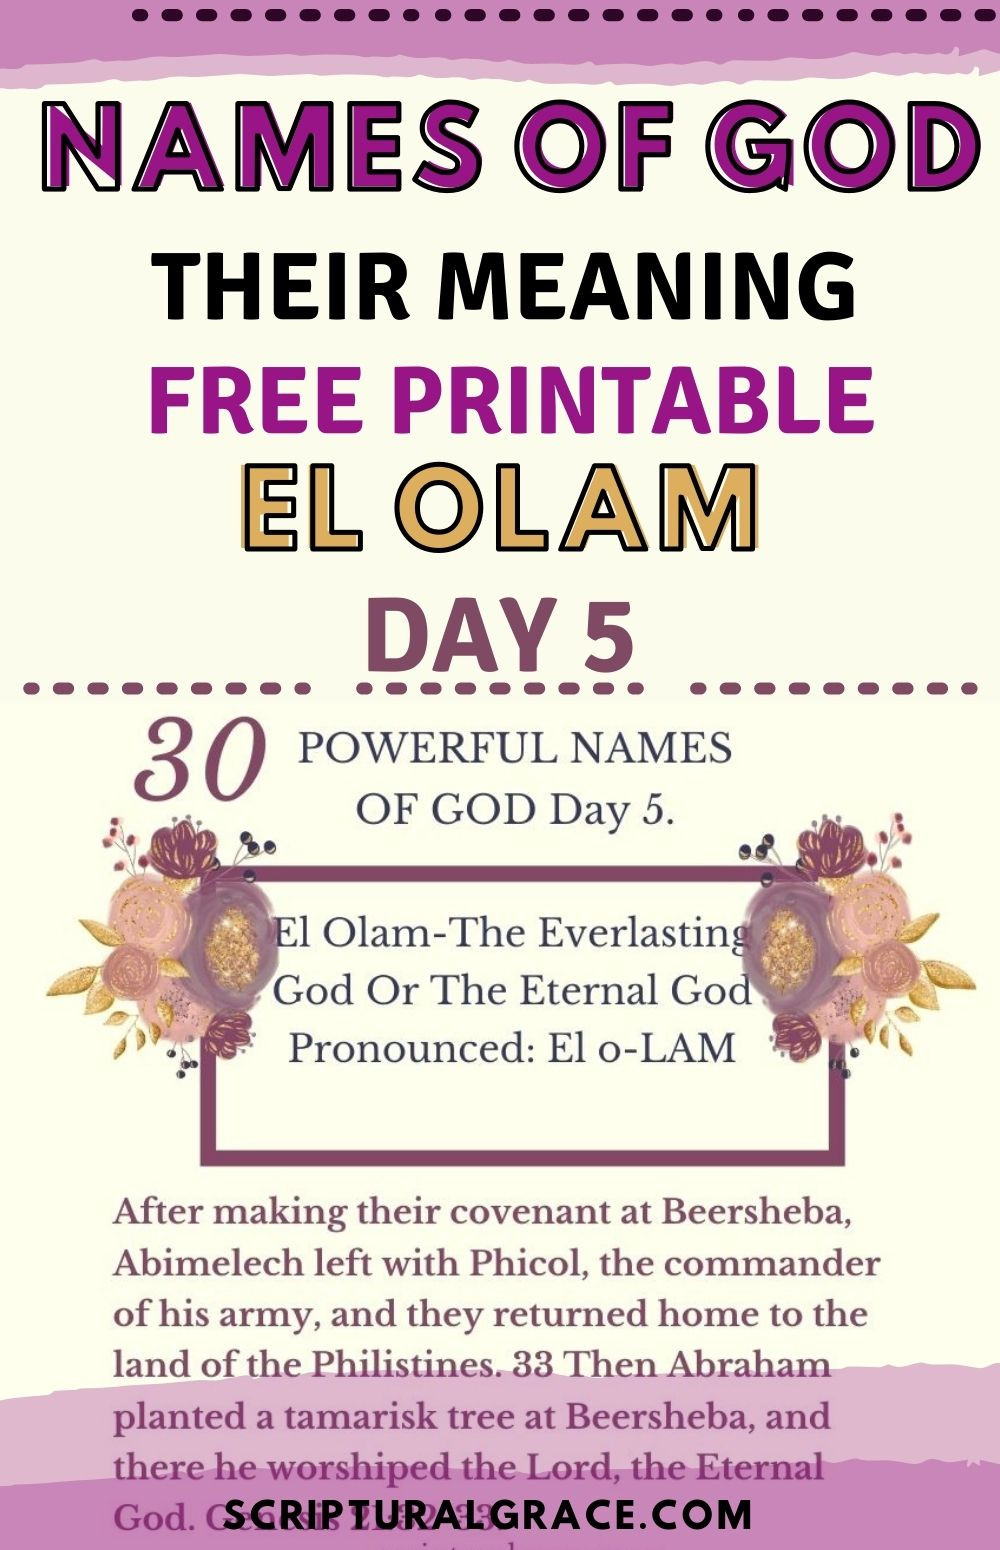 30 NAMES OF GOD AND THEIR MEANING DAY 5 FREE CHART